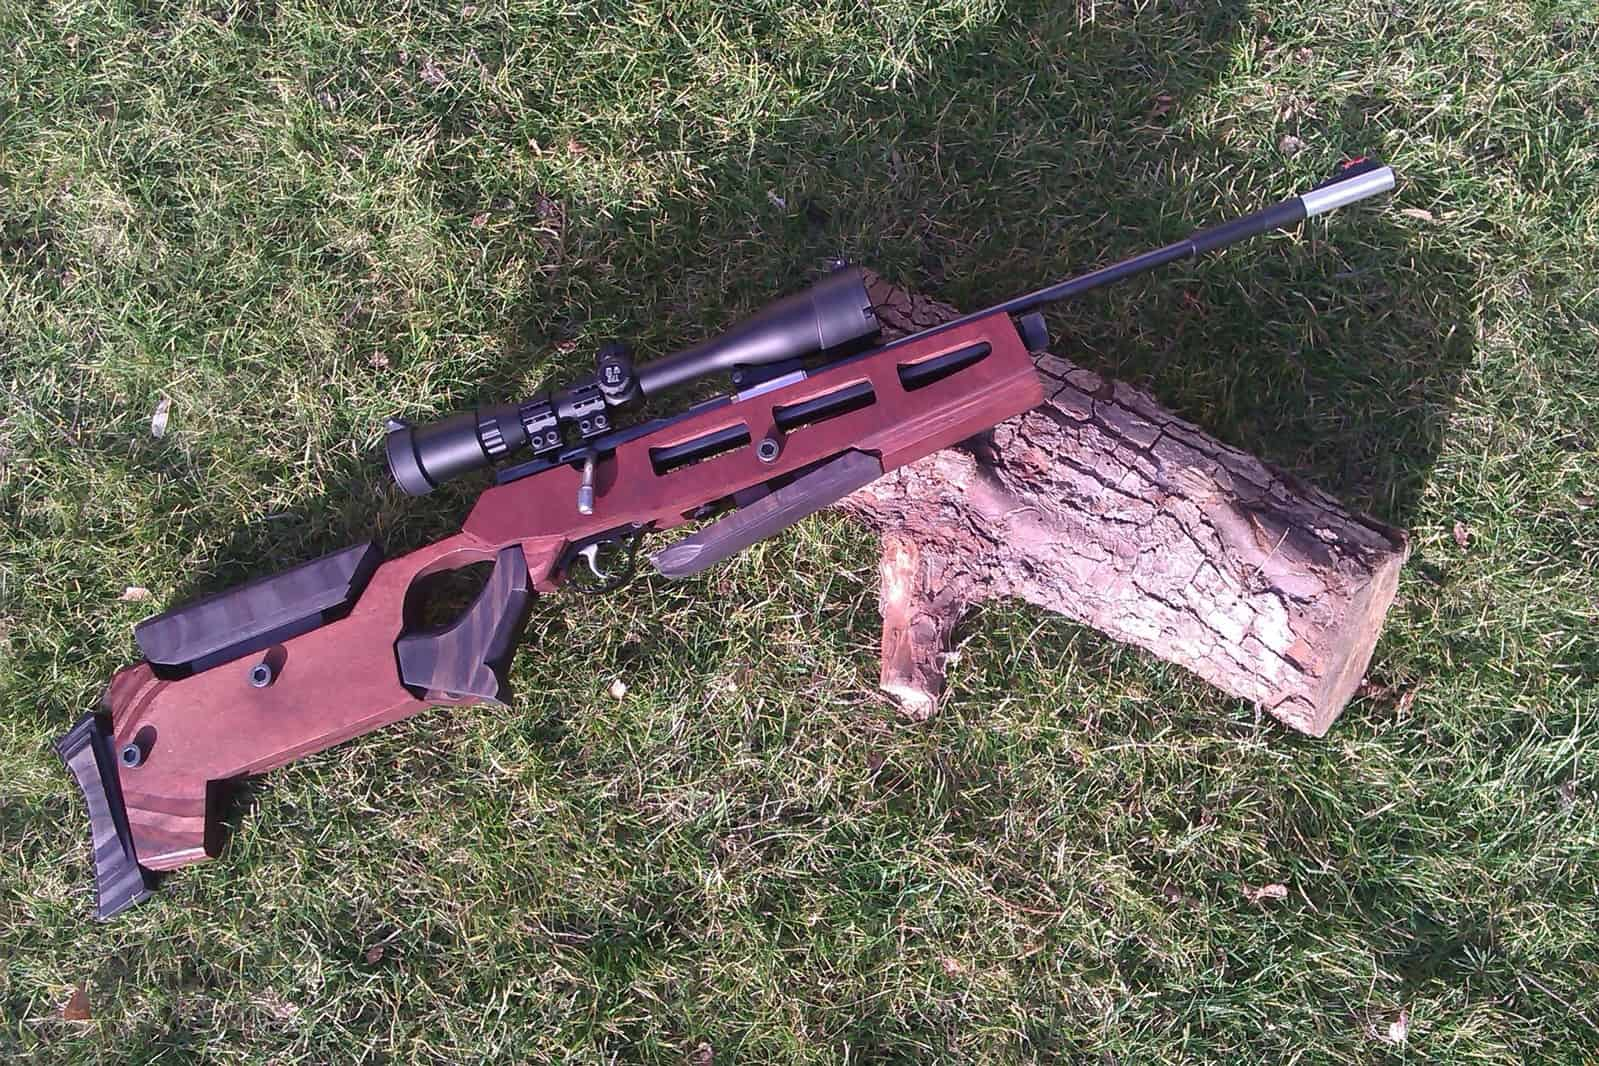 5 Best Air Rifle Scope Reviews [REVEALED 2019] - Top Choices